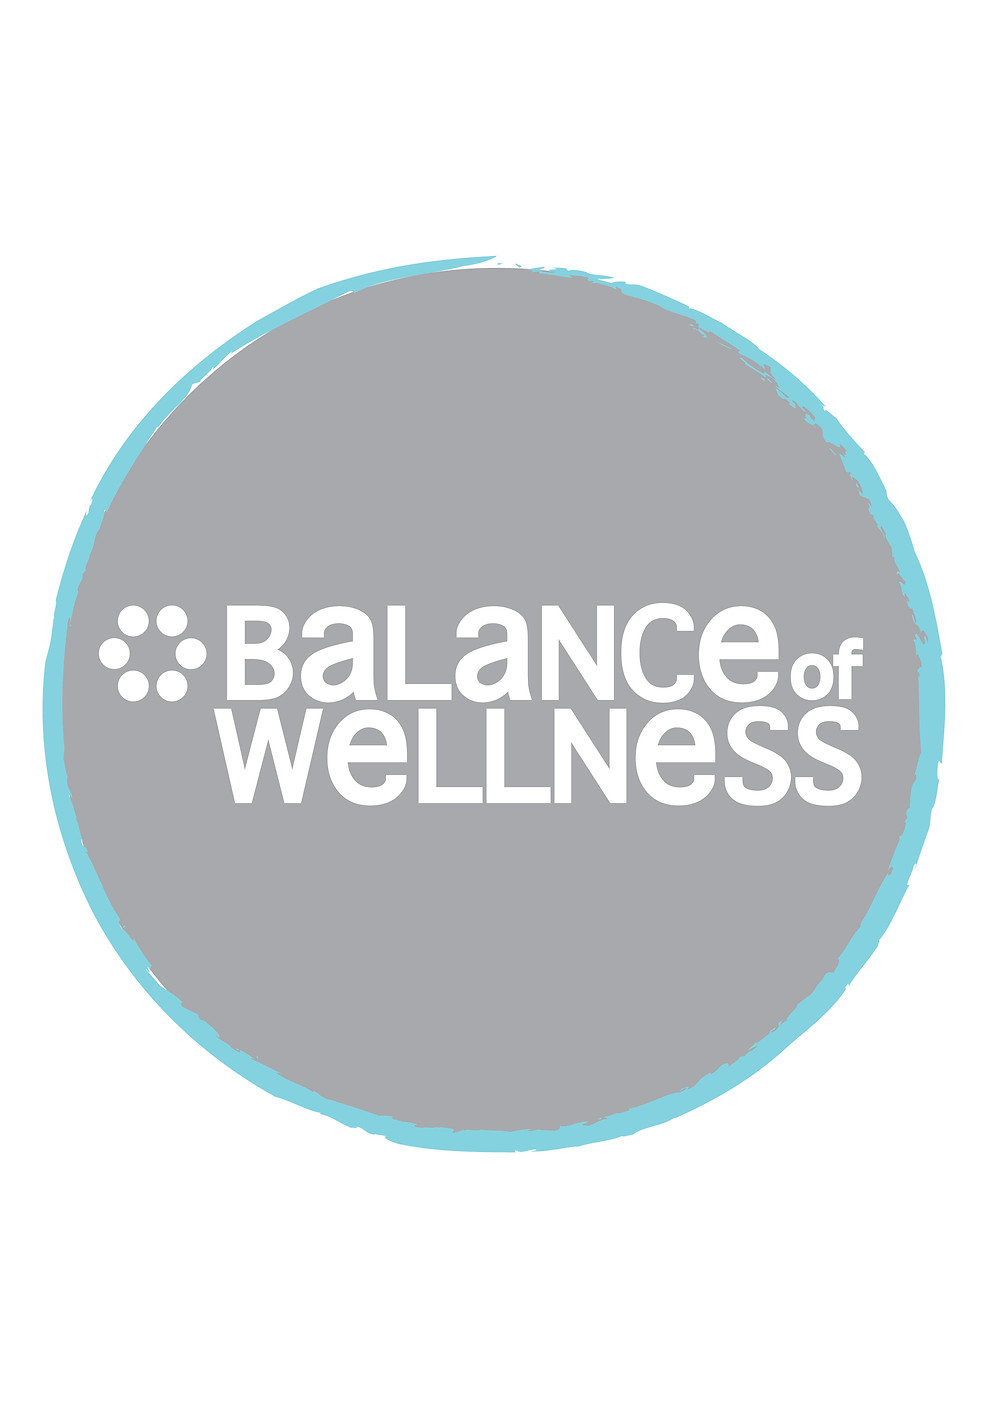 Balance of Wellness